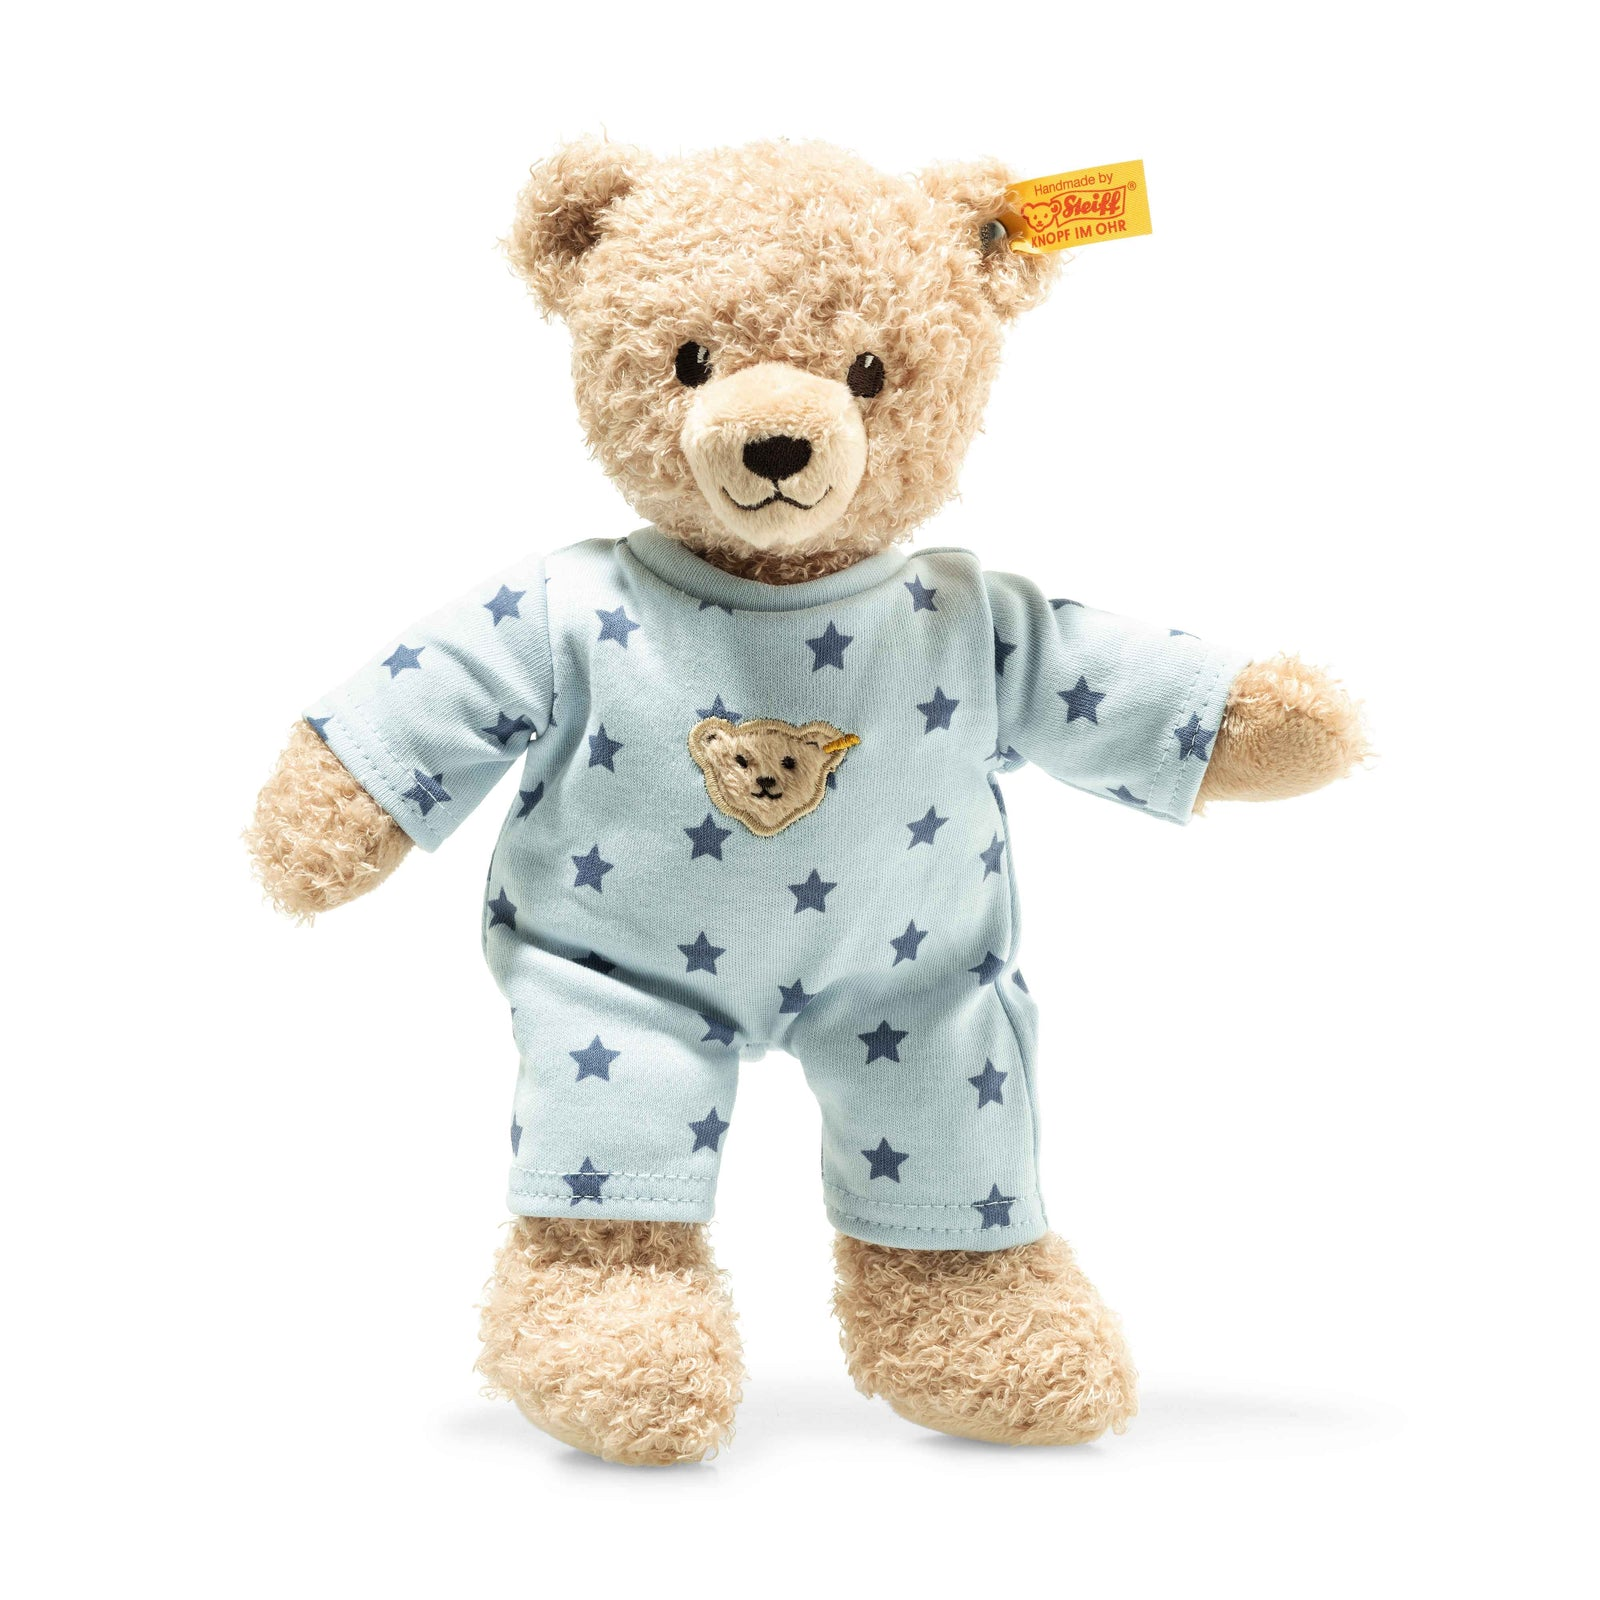 Steiff Teddy and Me Teddy Bear Boy Baby in Pyjama - EAN 241642